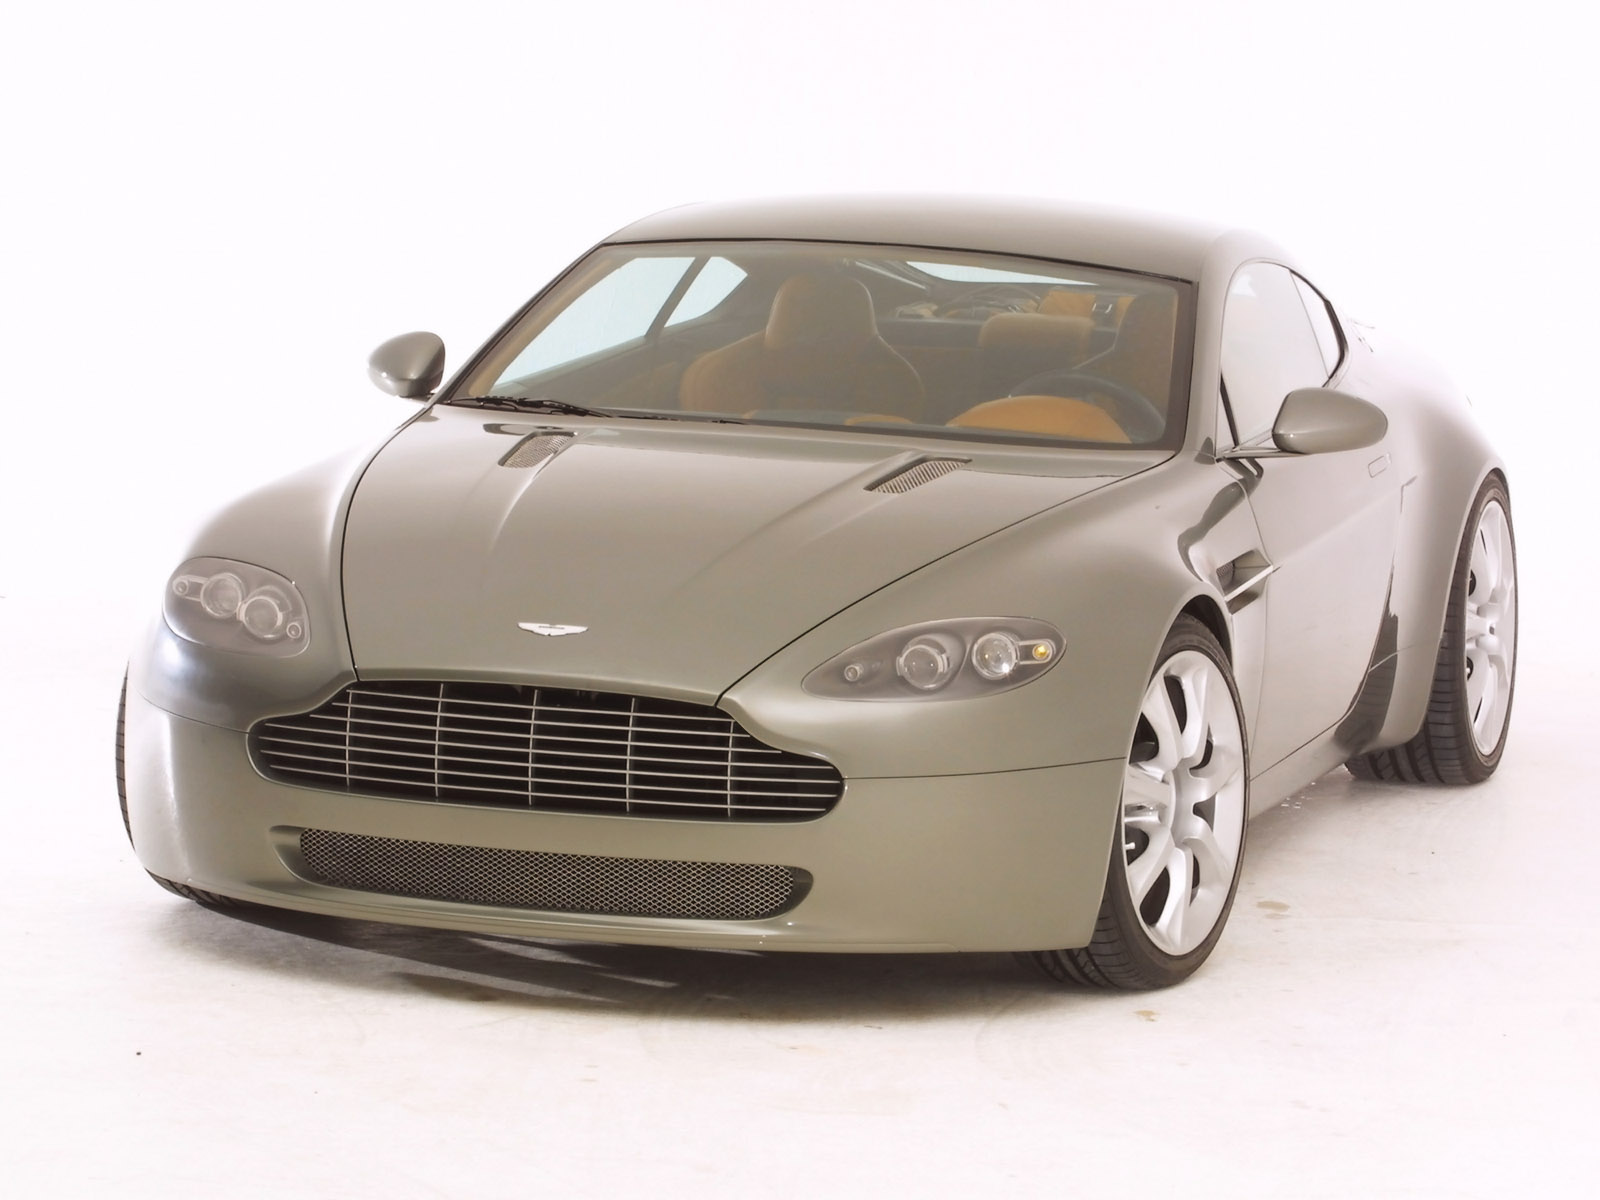 Aston martin amv8 photo - 3